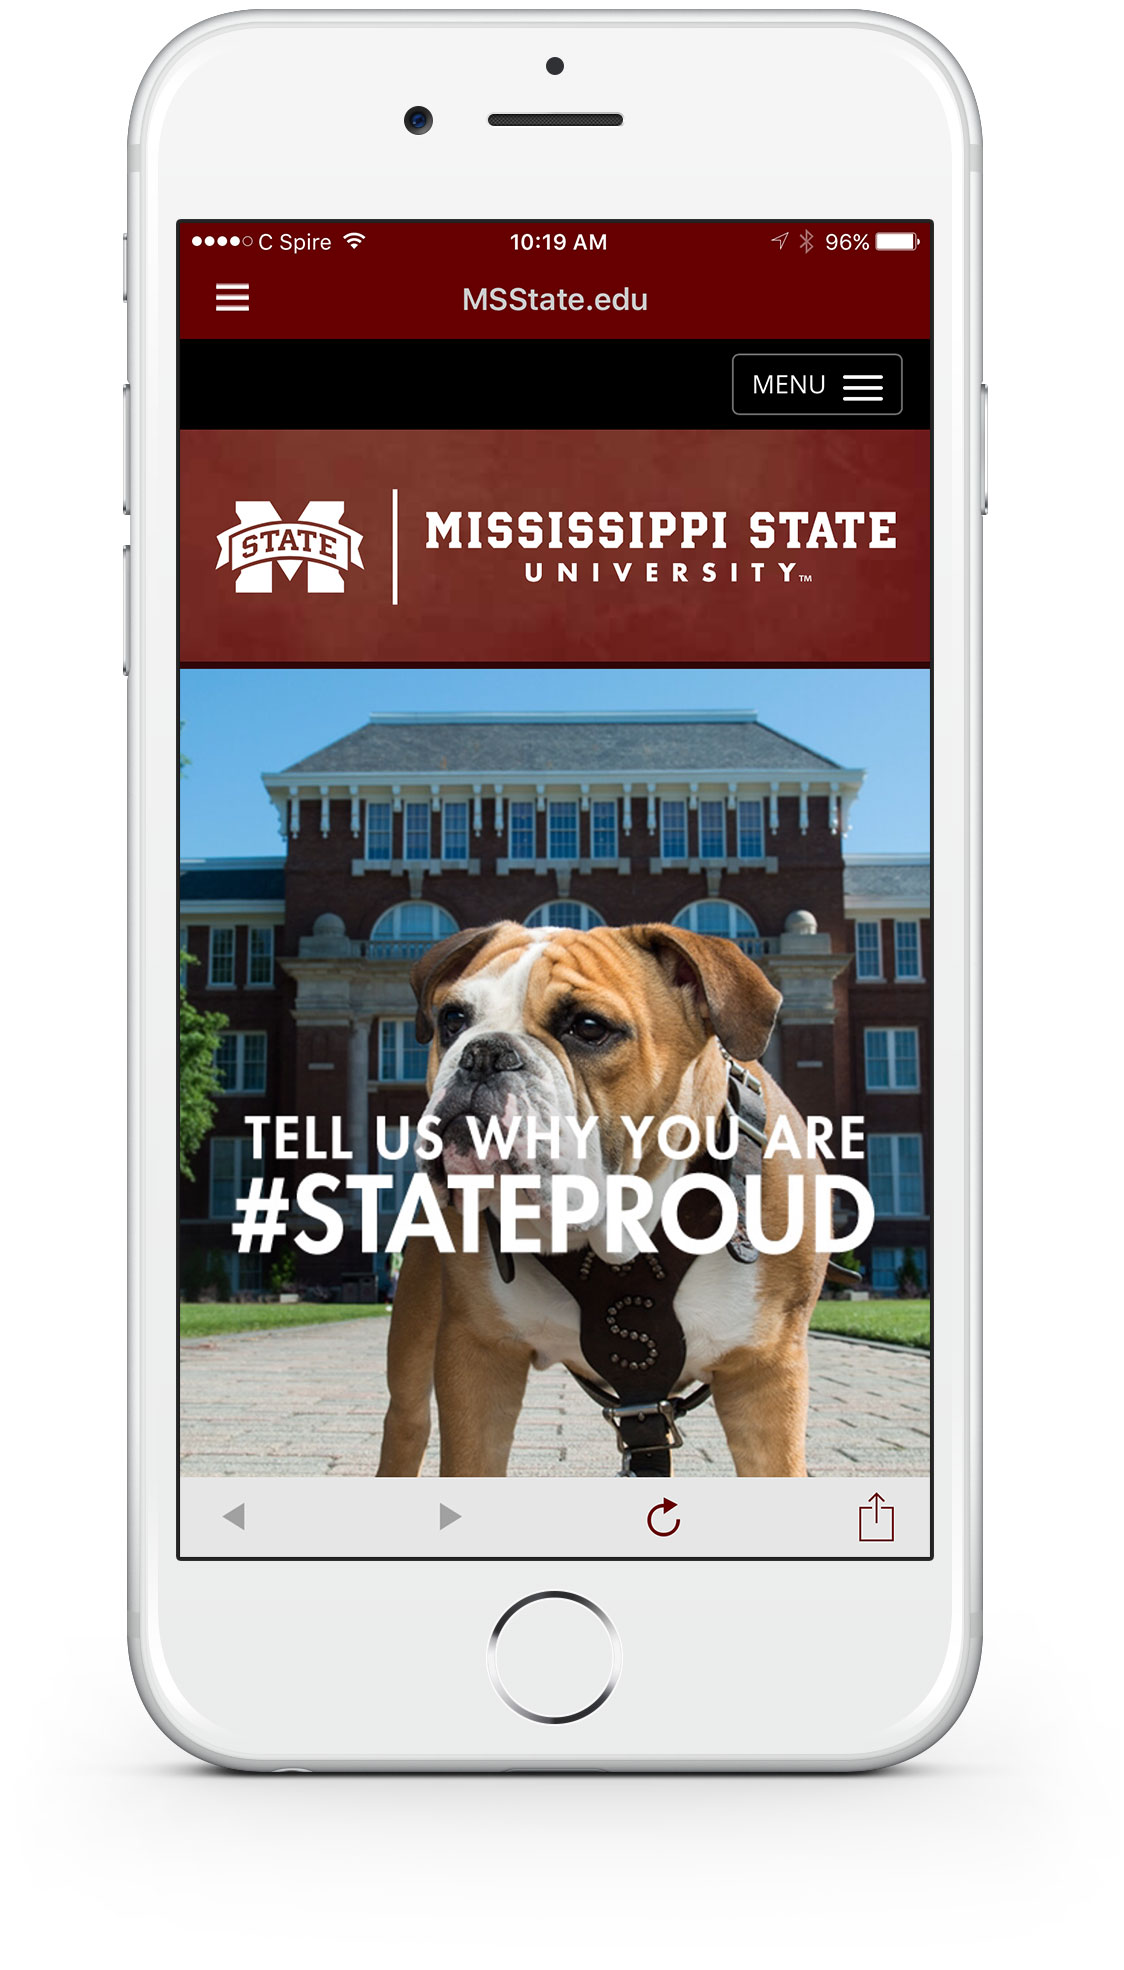 Rendering of the msstate.edu mobile site within the myState Mobile app.